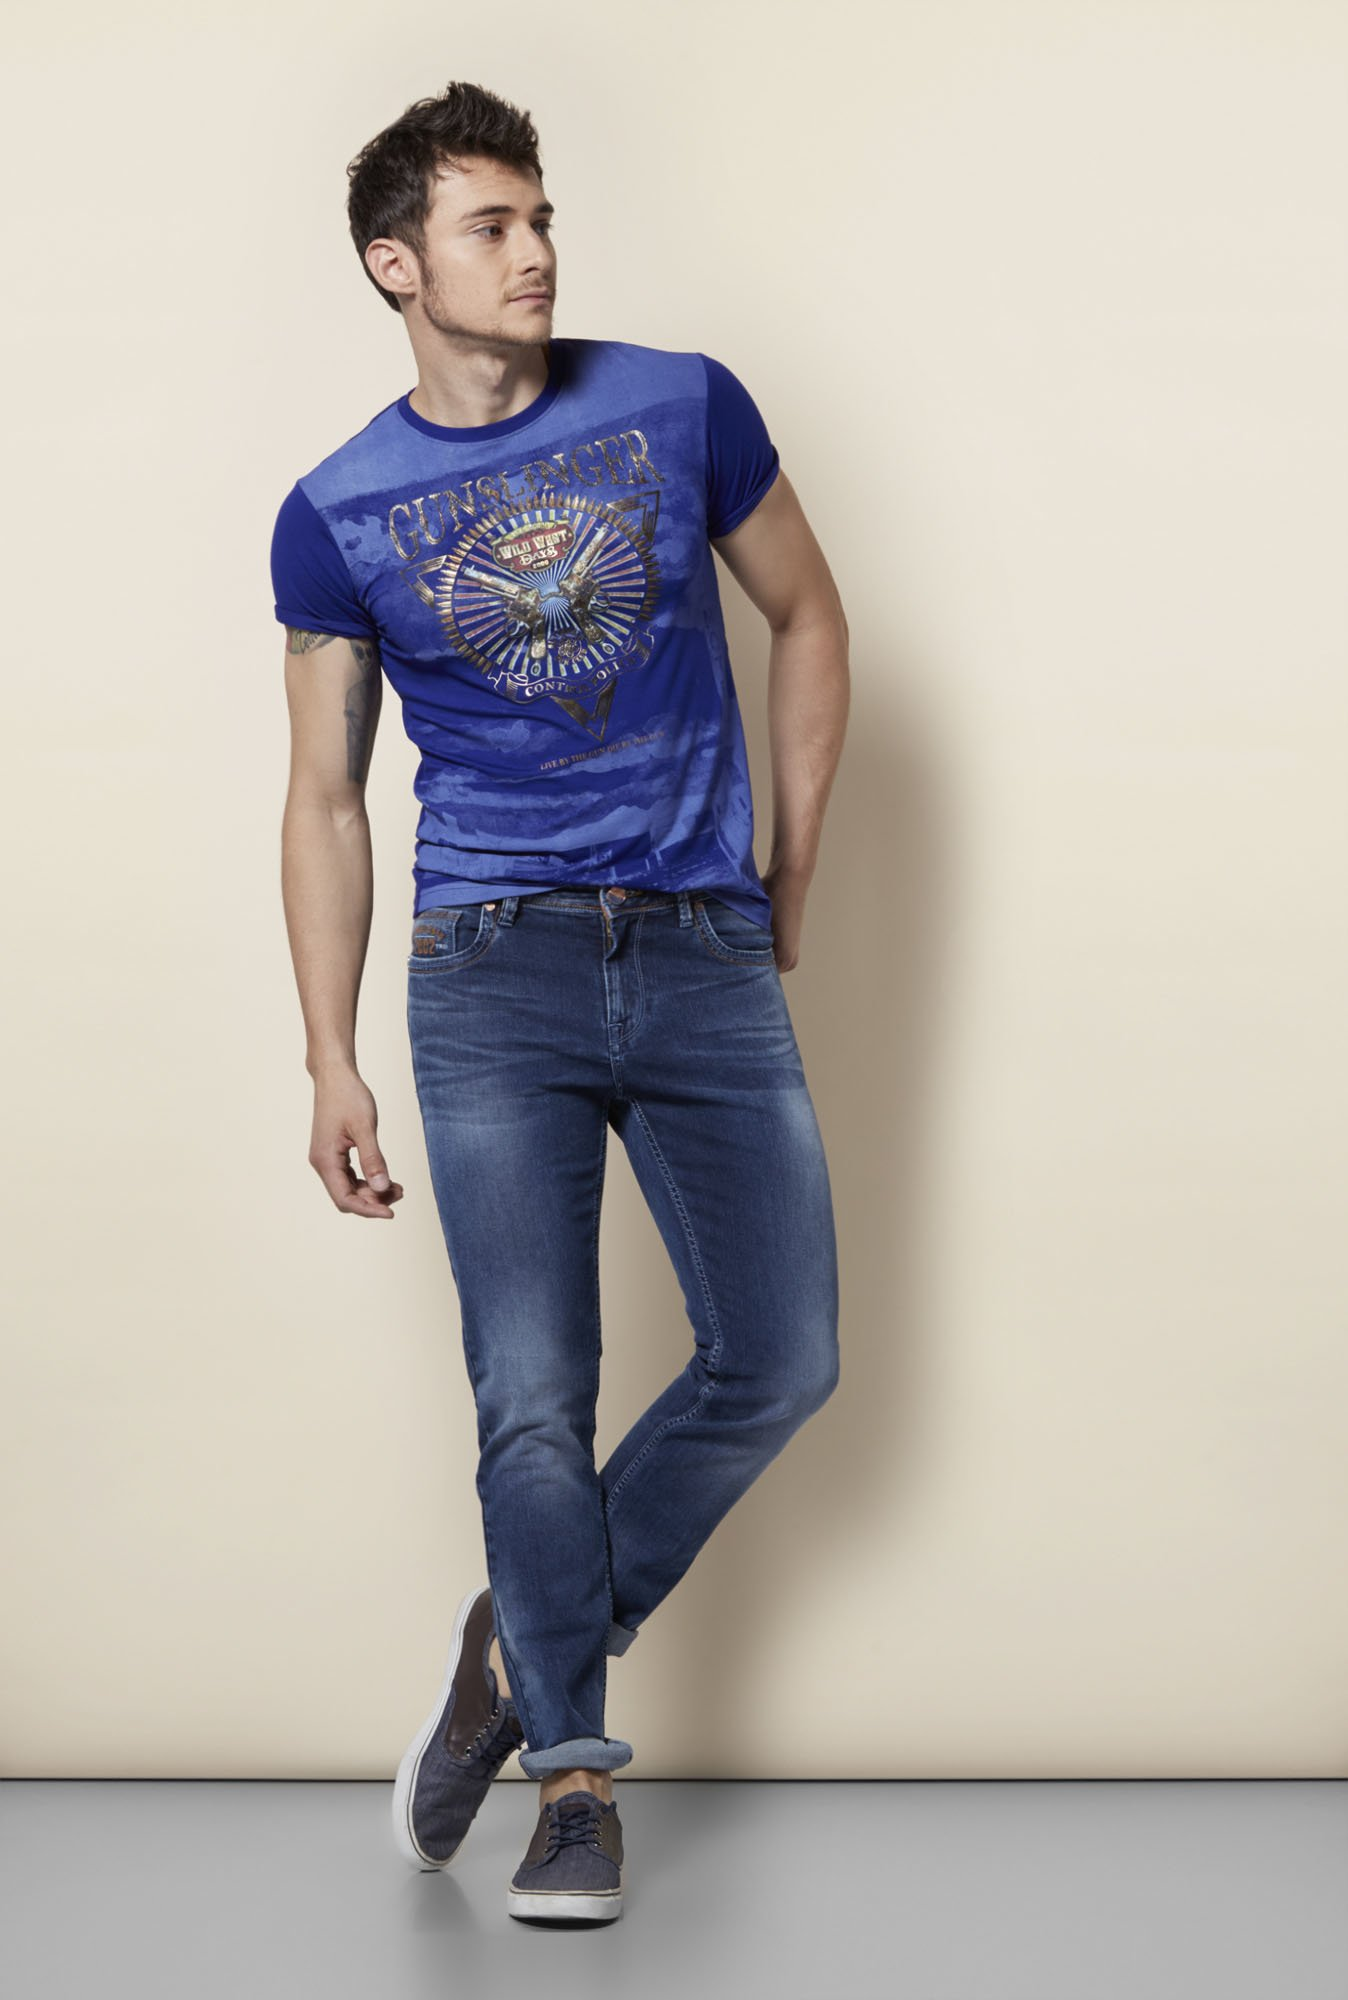 Integriti Royal Blue Printed T Shirt